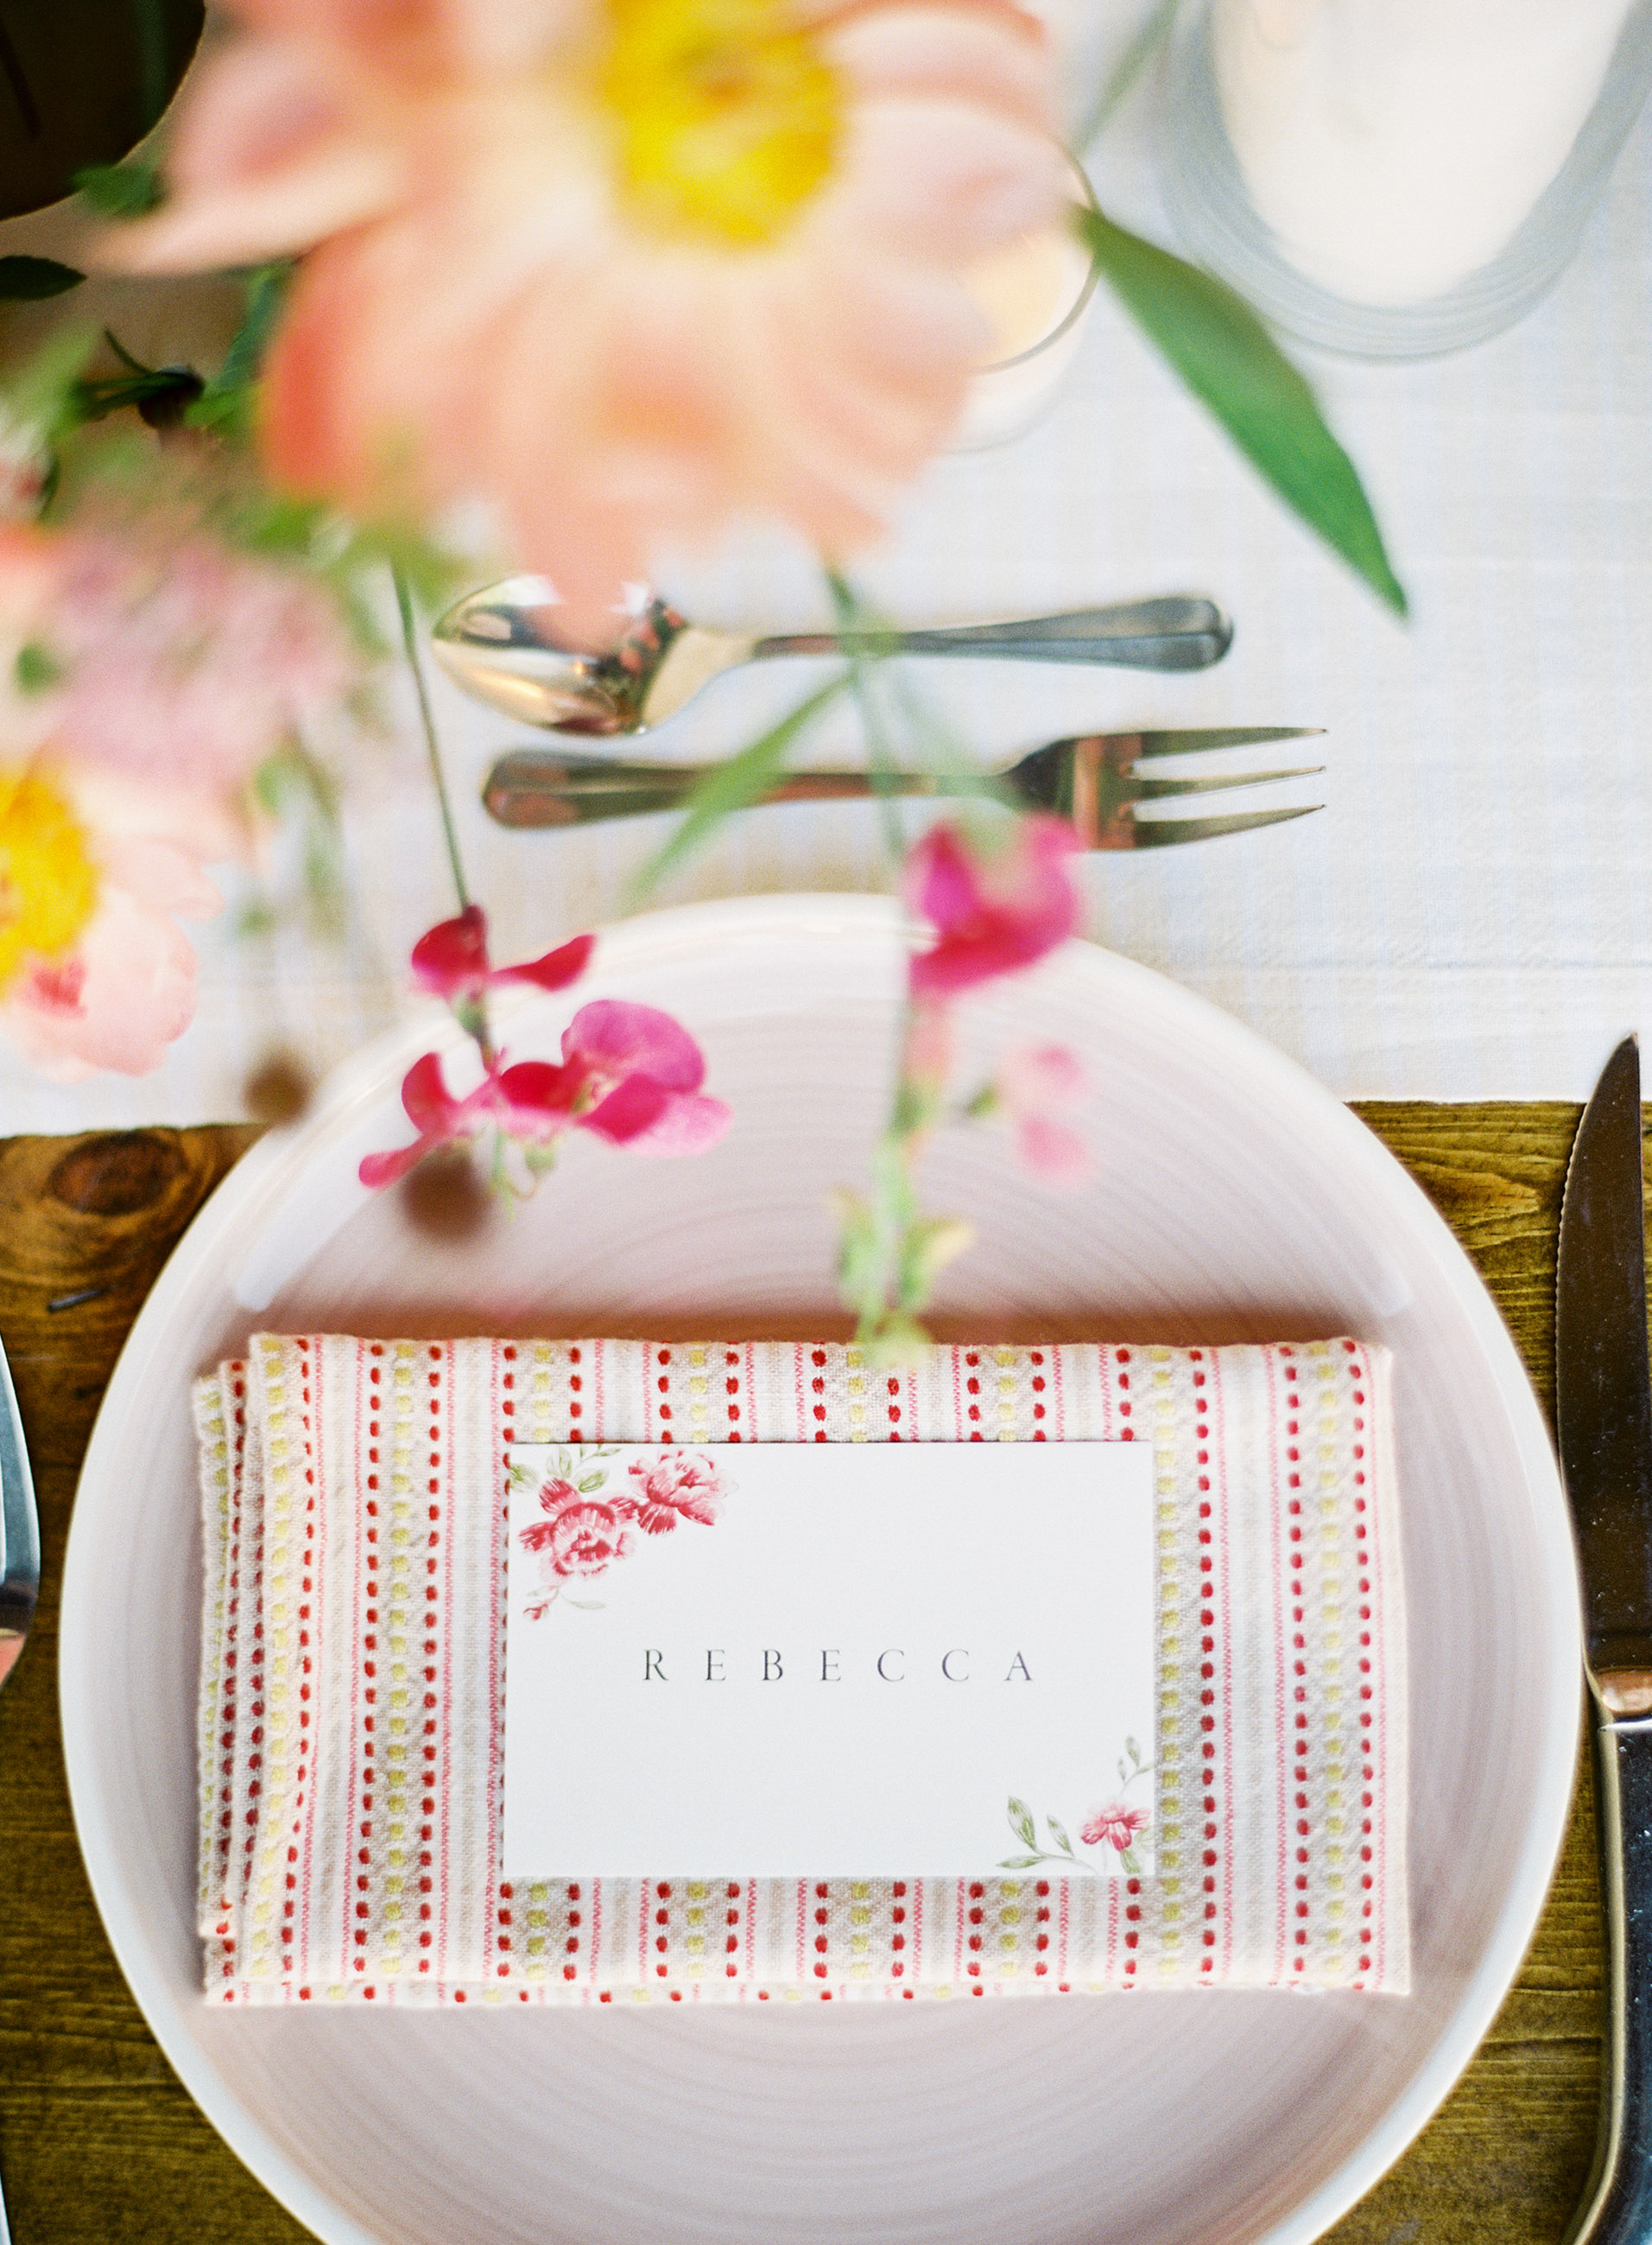 rebecca clay rehearsal dinner placesetting